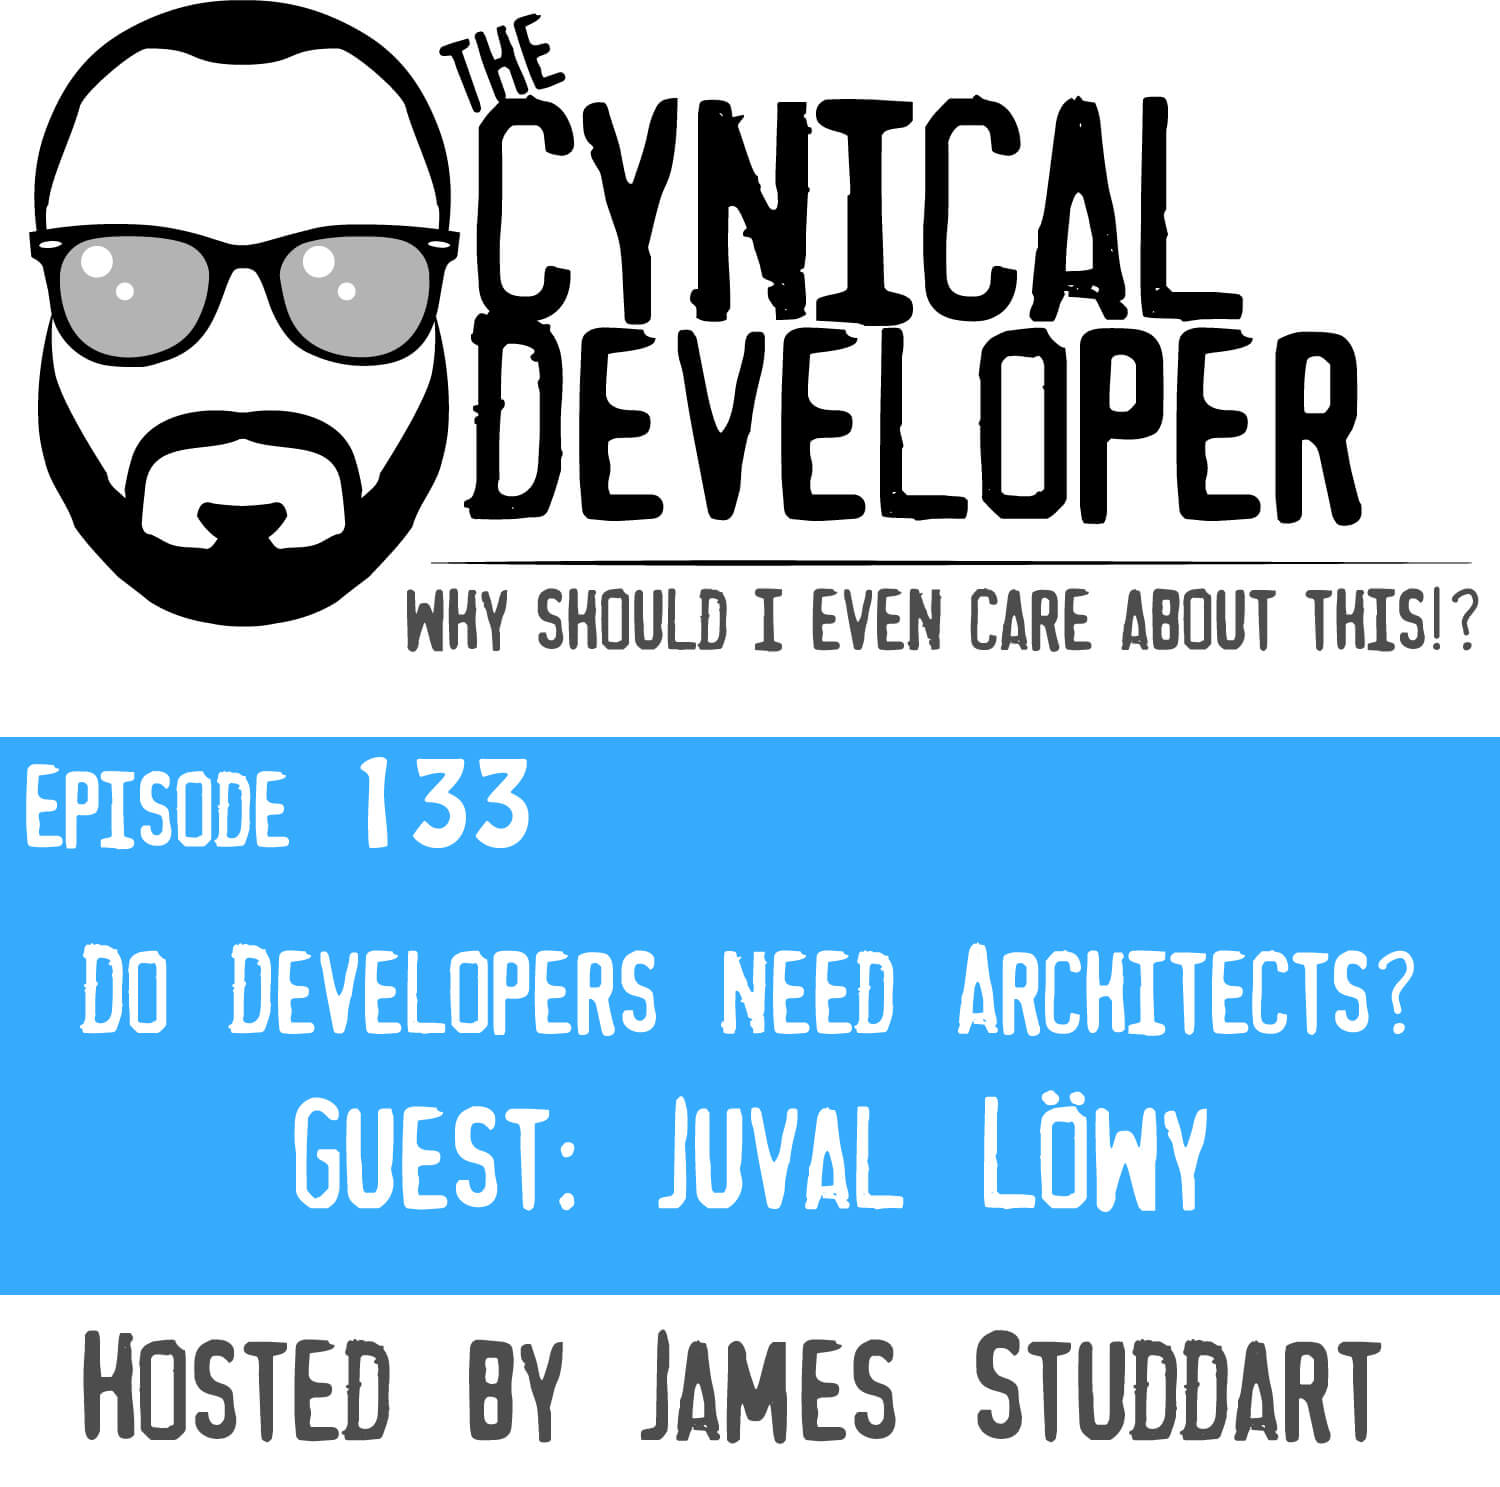 Episode 133 - Do Developers need Architects?